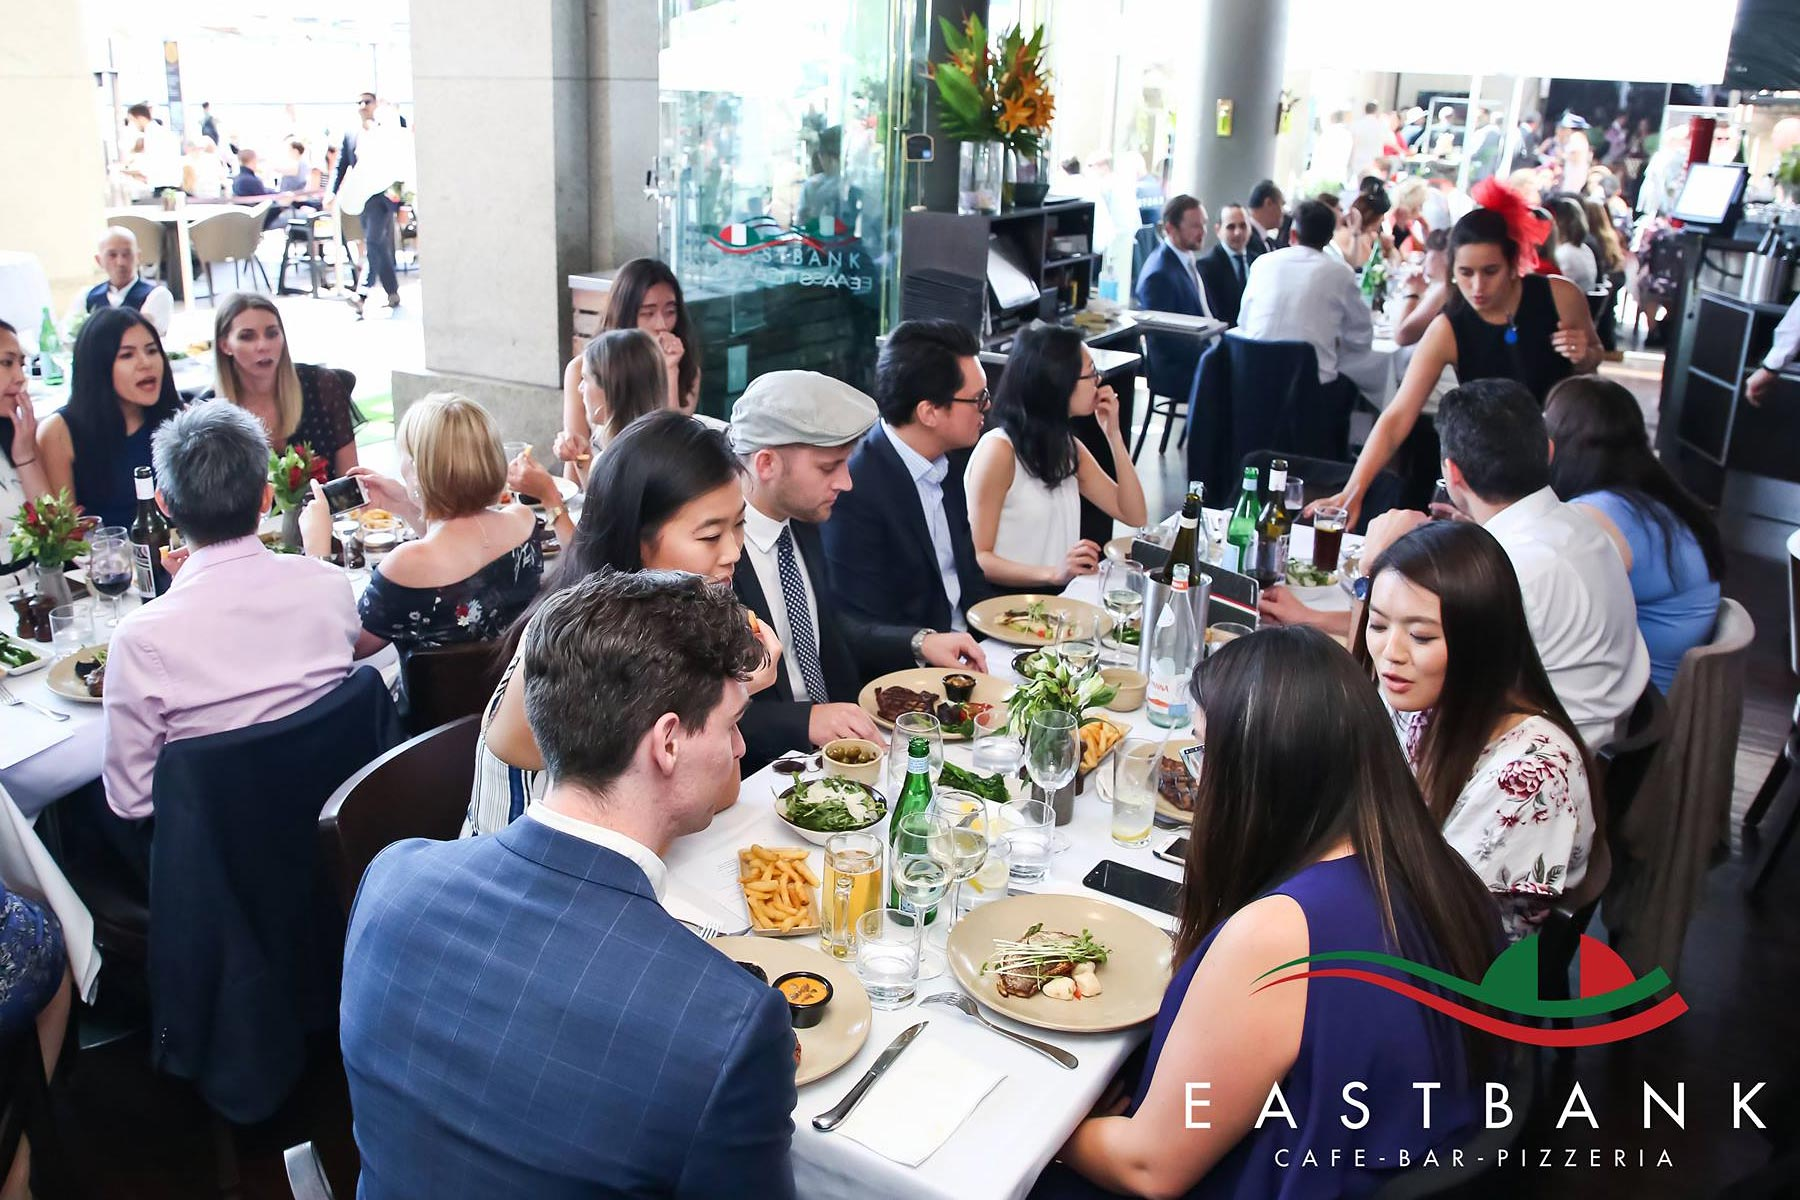 Eastbank Cafe Restaurant – interior: private event / function